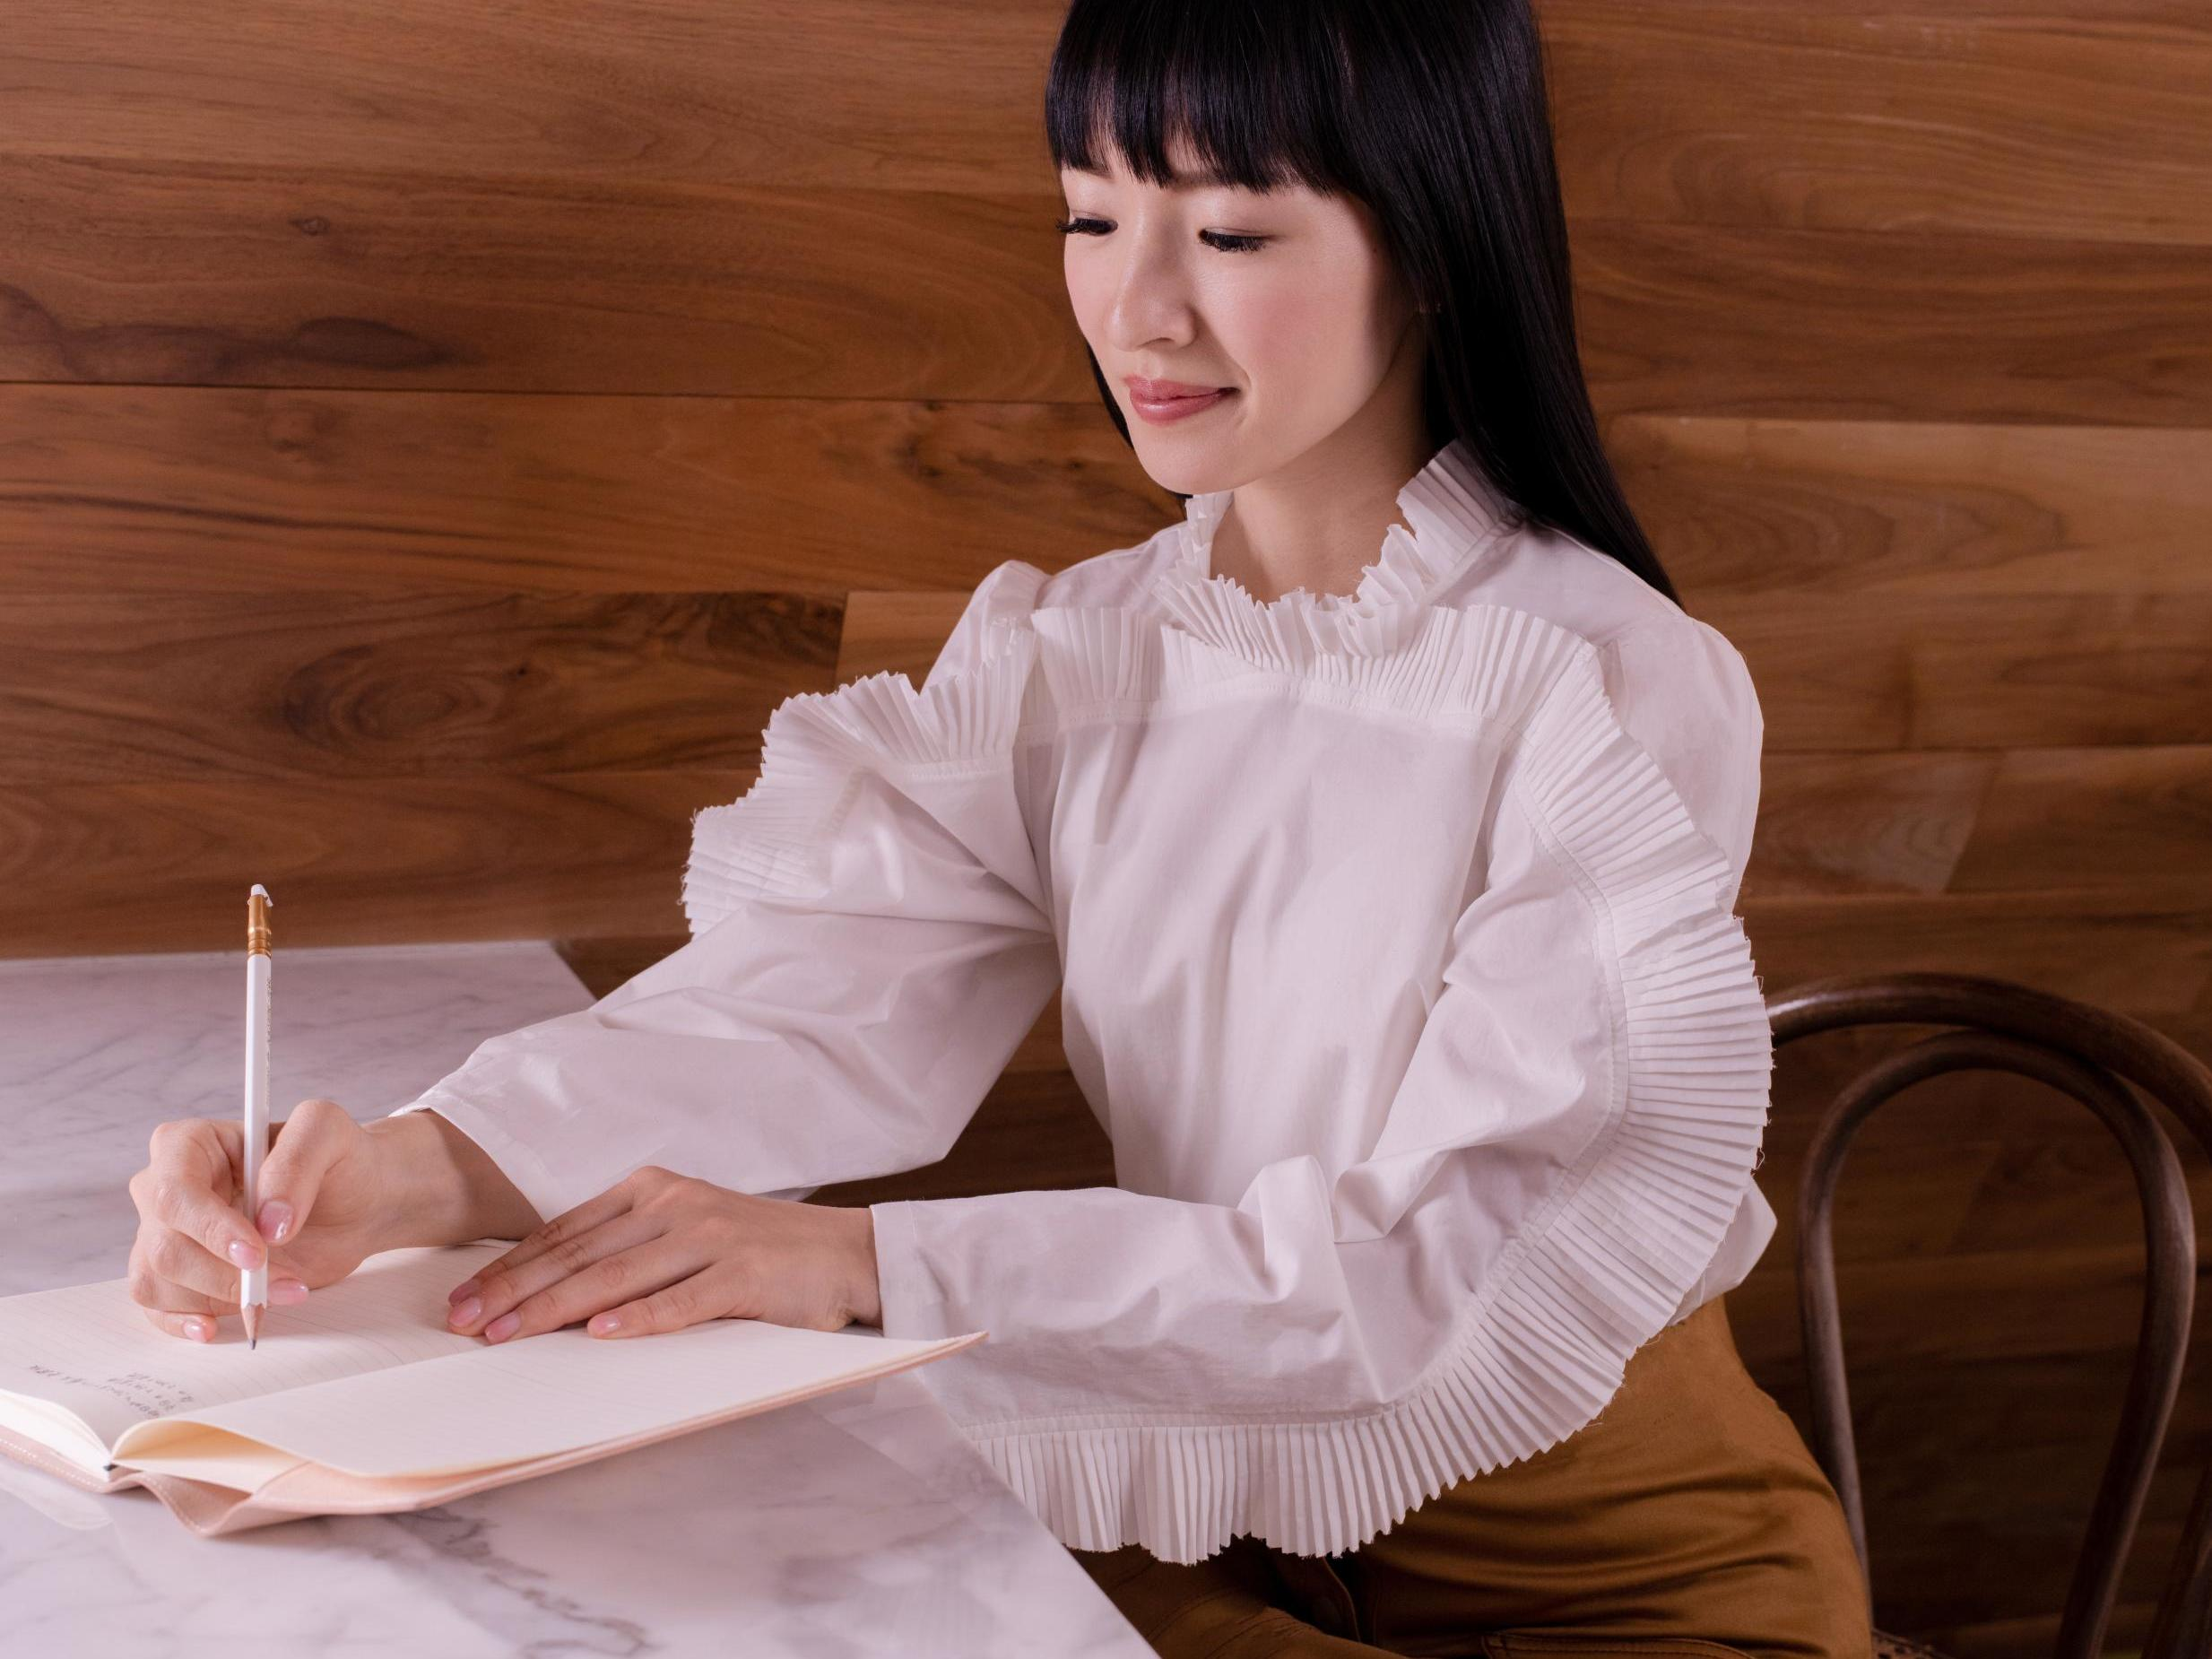 What's Marie Kondo been up to during lockdown?